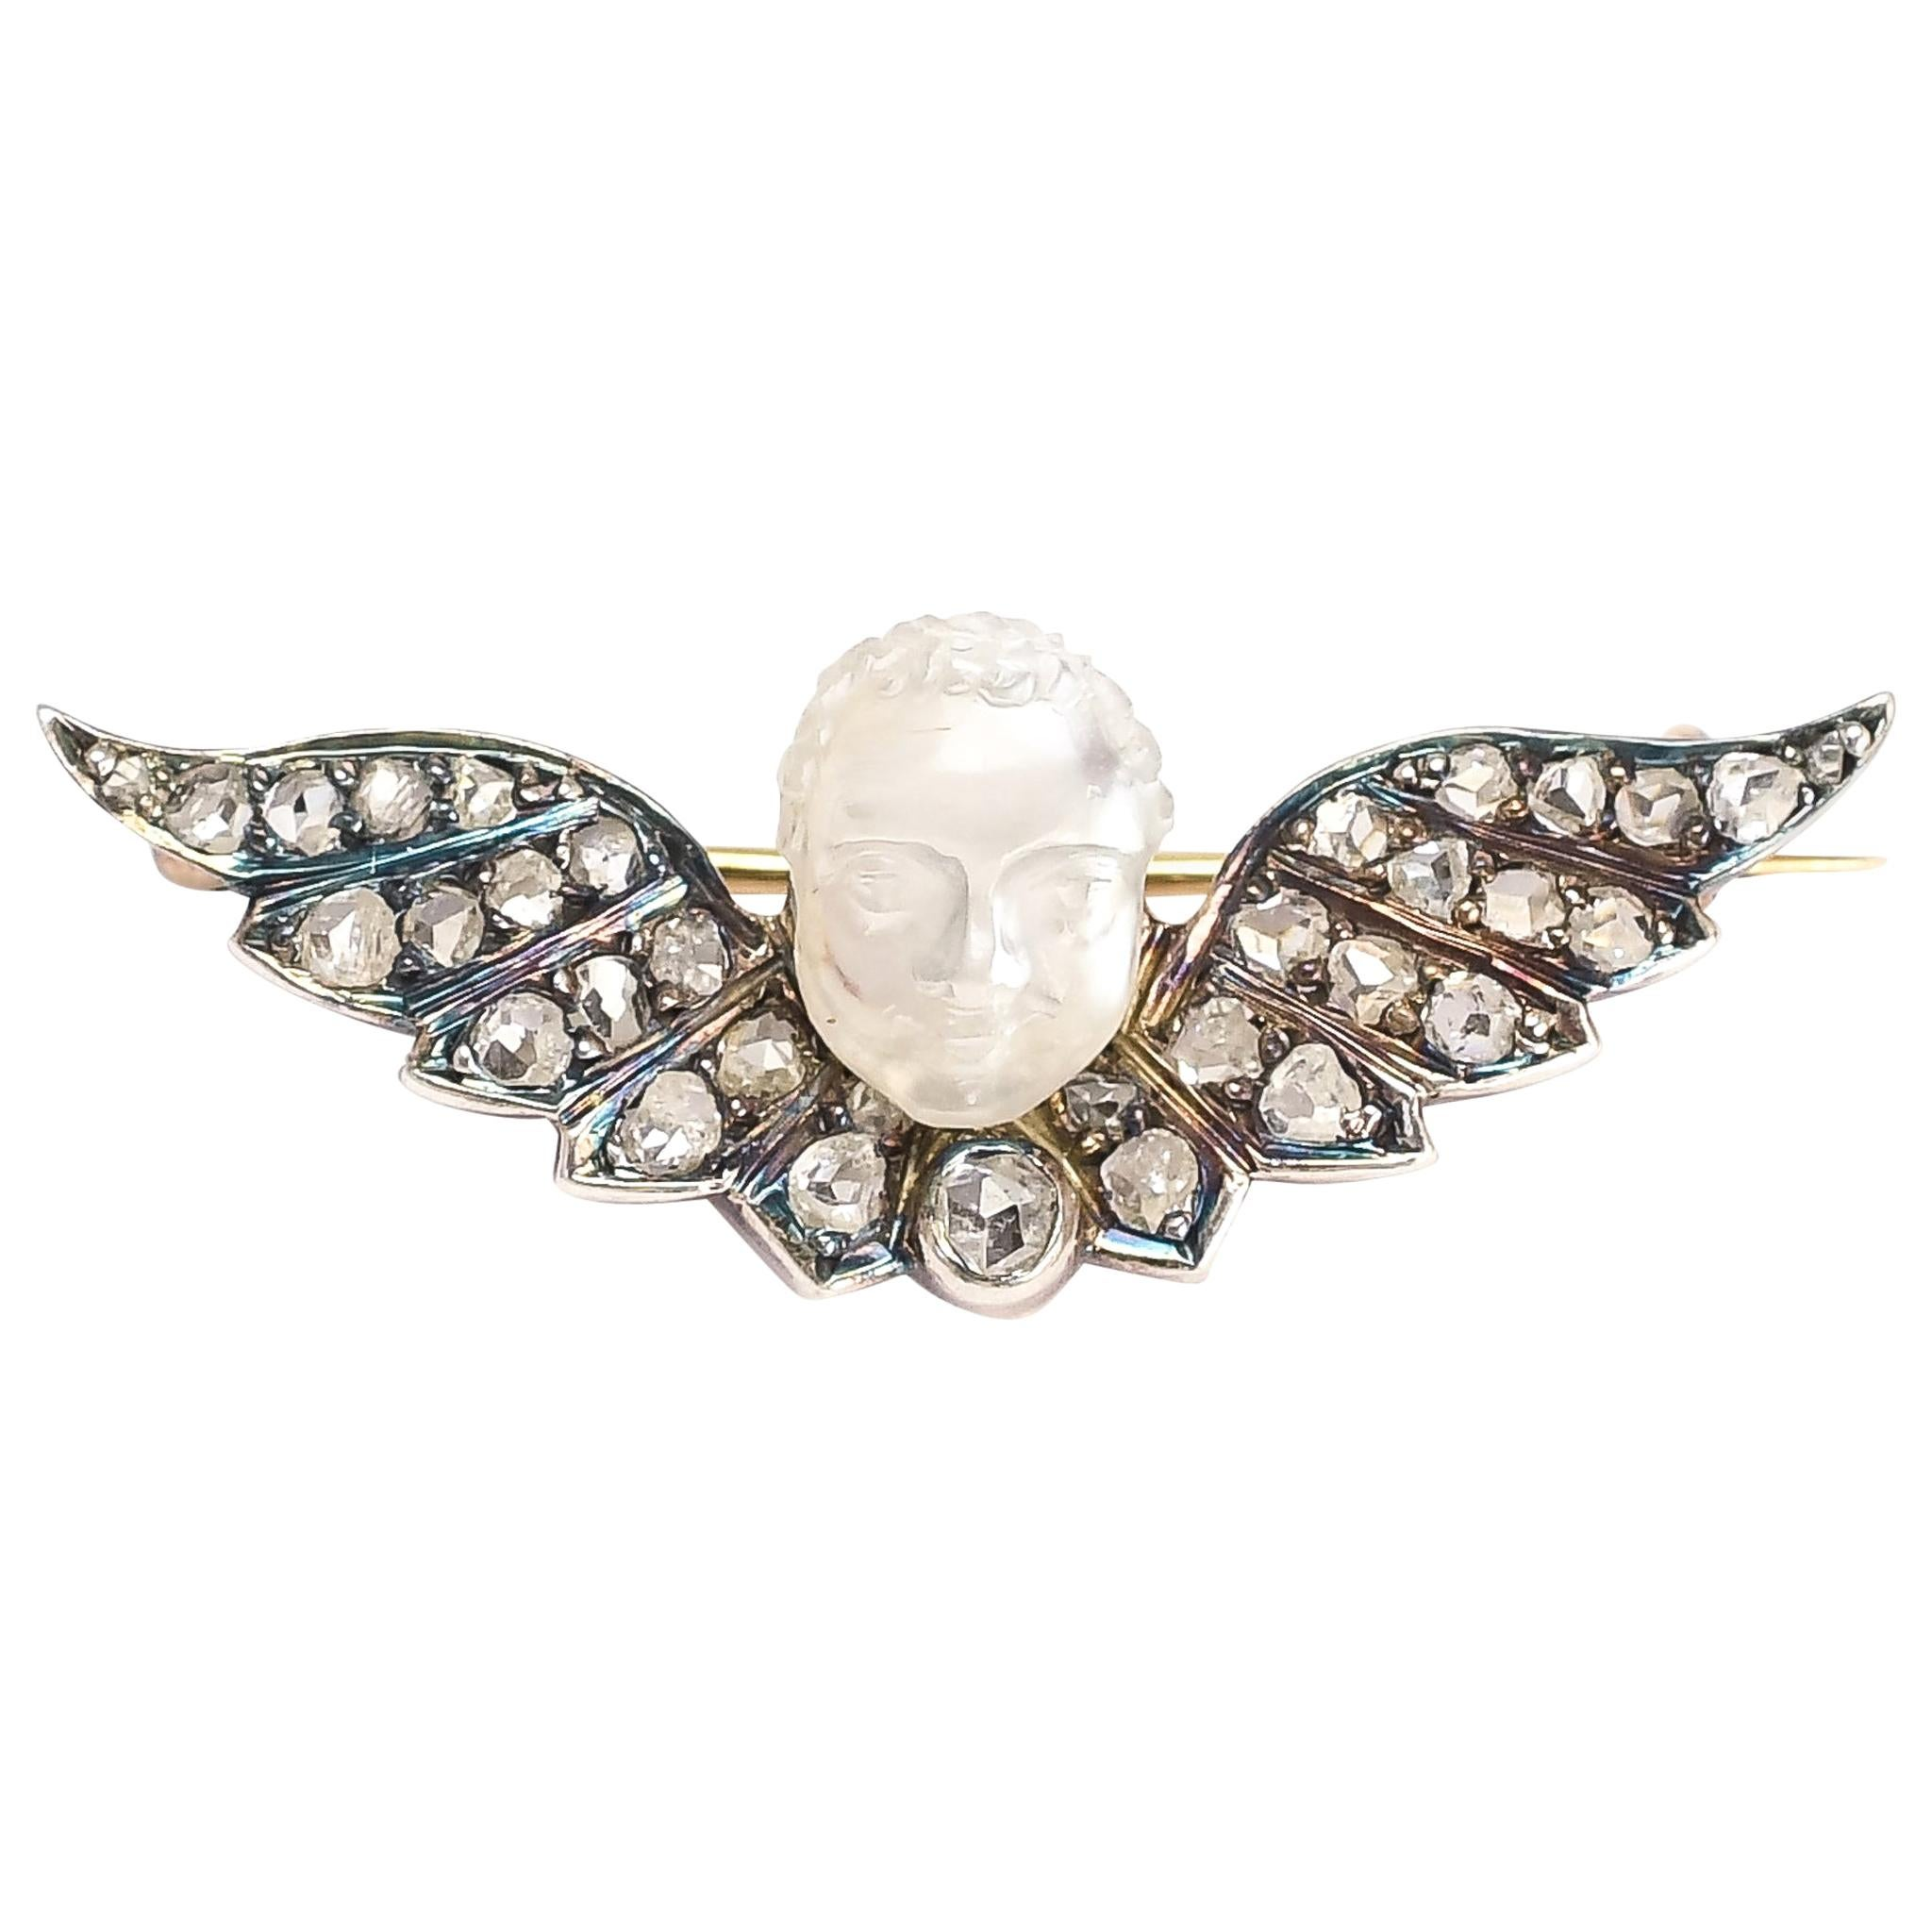 Antique Early Victorian Winged Man-in-the-Moonstone Brooch